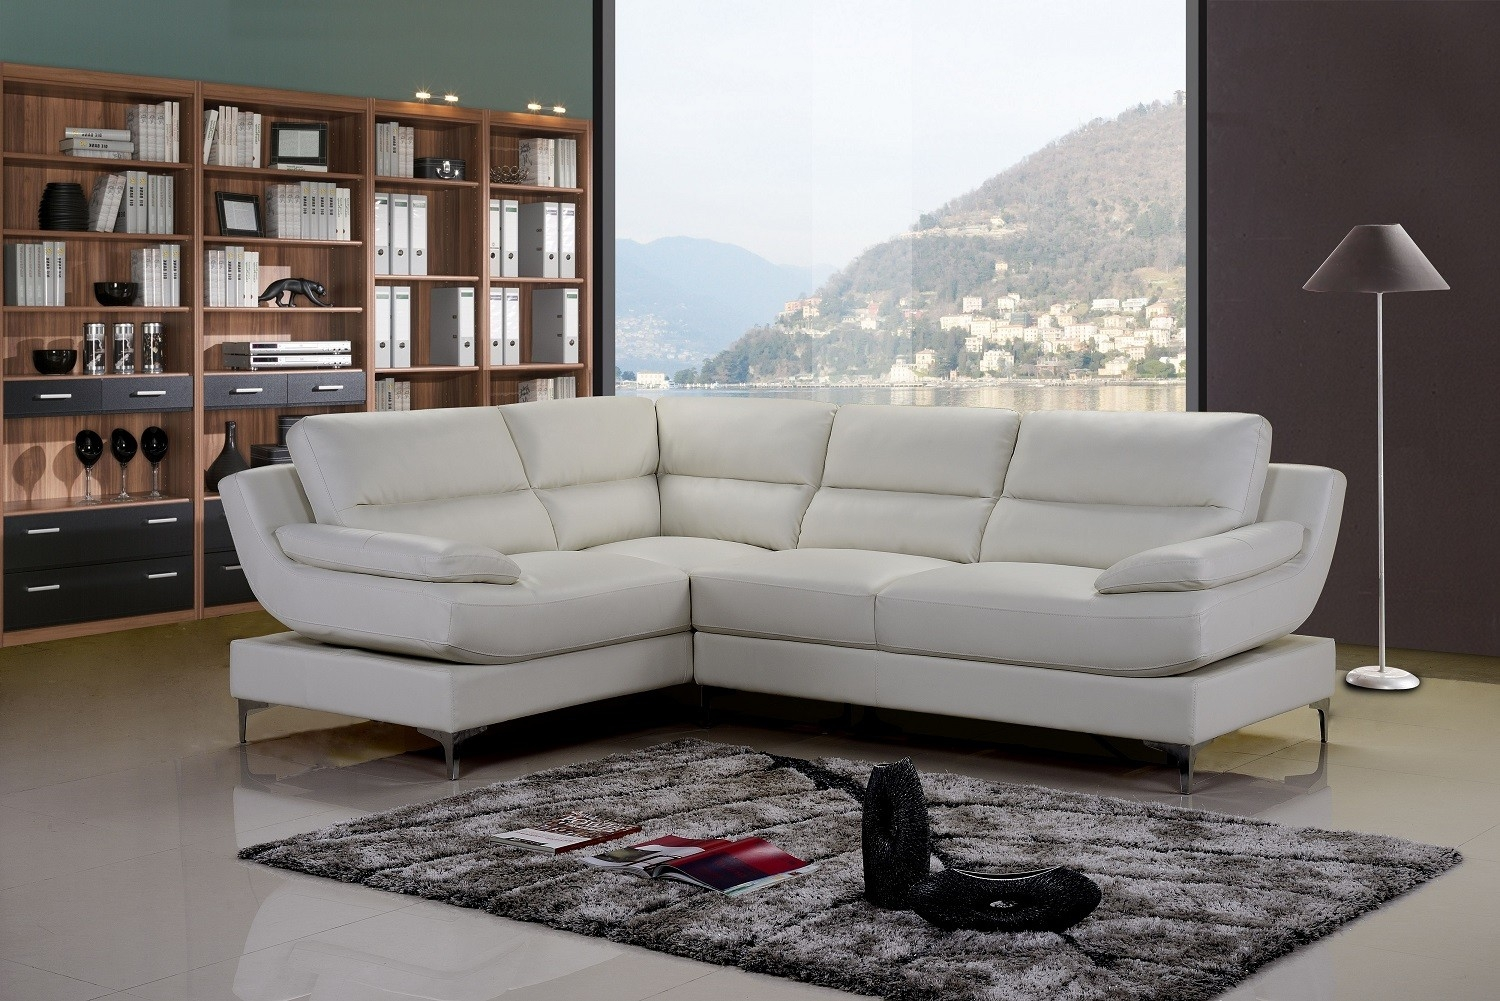 Monza Stylist Modern White Leather Corner Sofa Lefthand Plus In White Leather Corner Sofa (Photo 6 of 15)